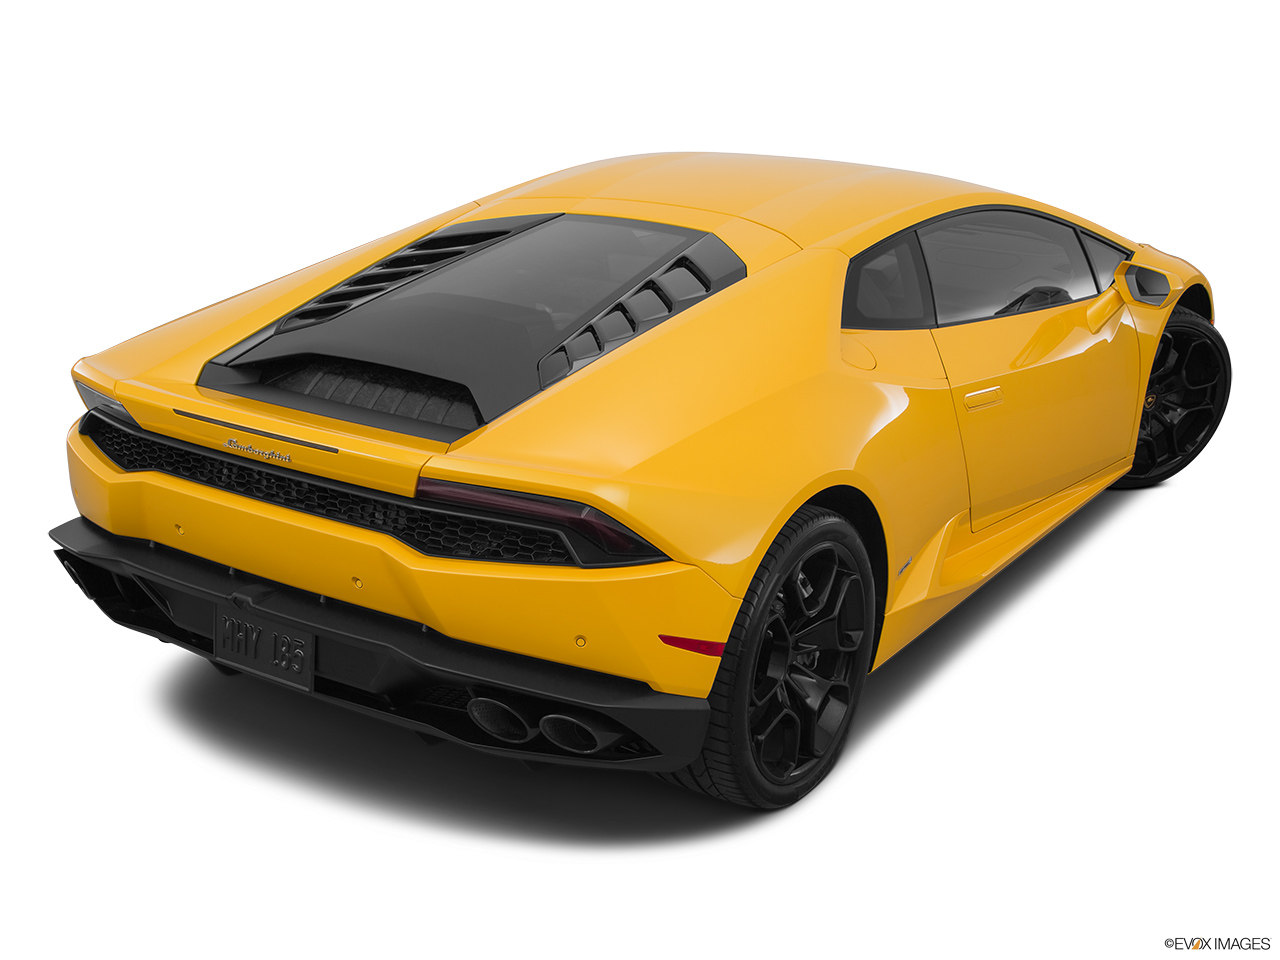 2015 Lamborghini Huracan LP 610-4 Rear 3/4 angle view.